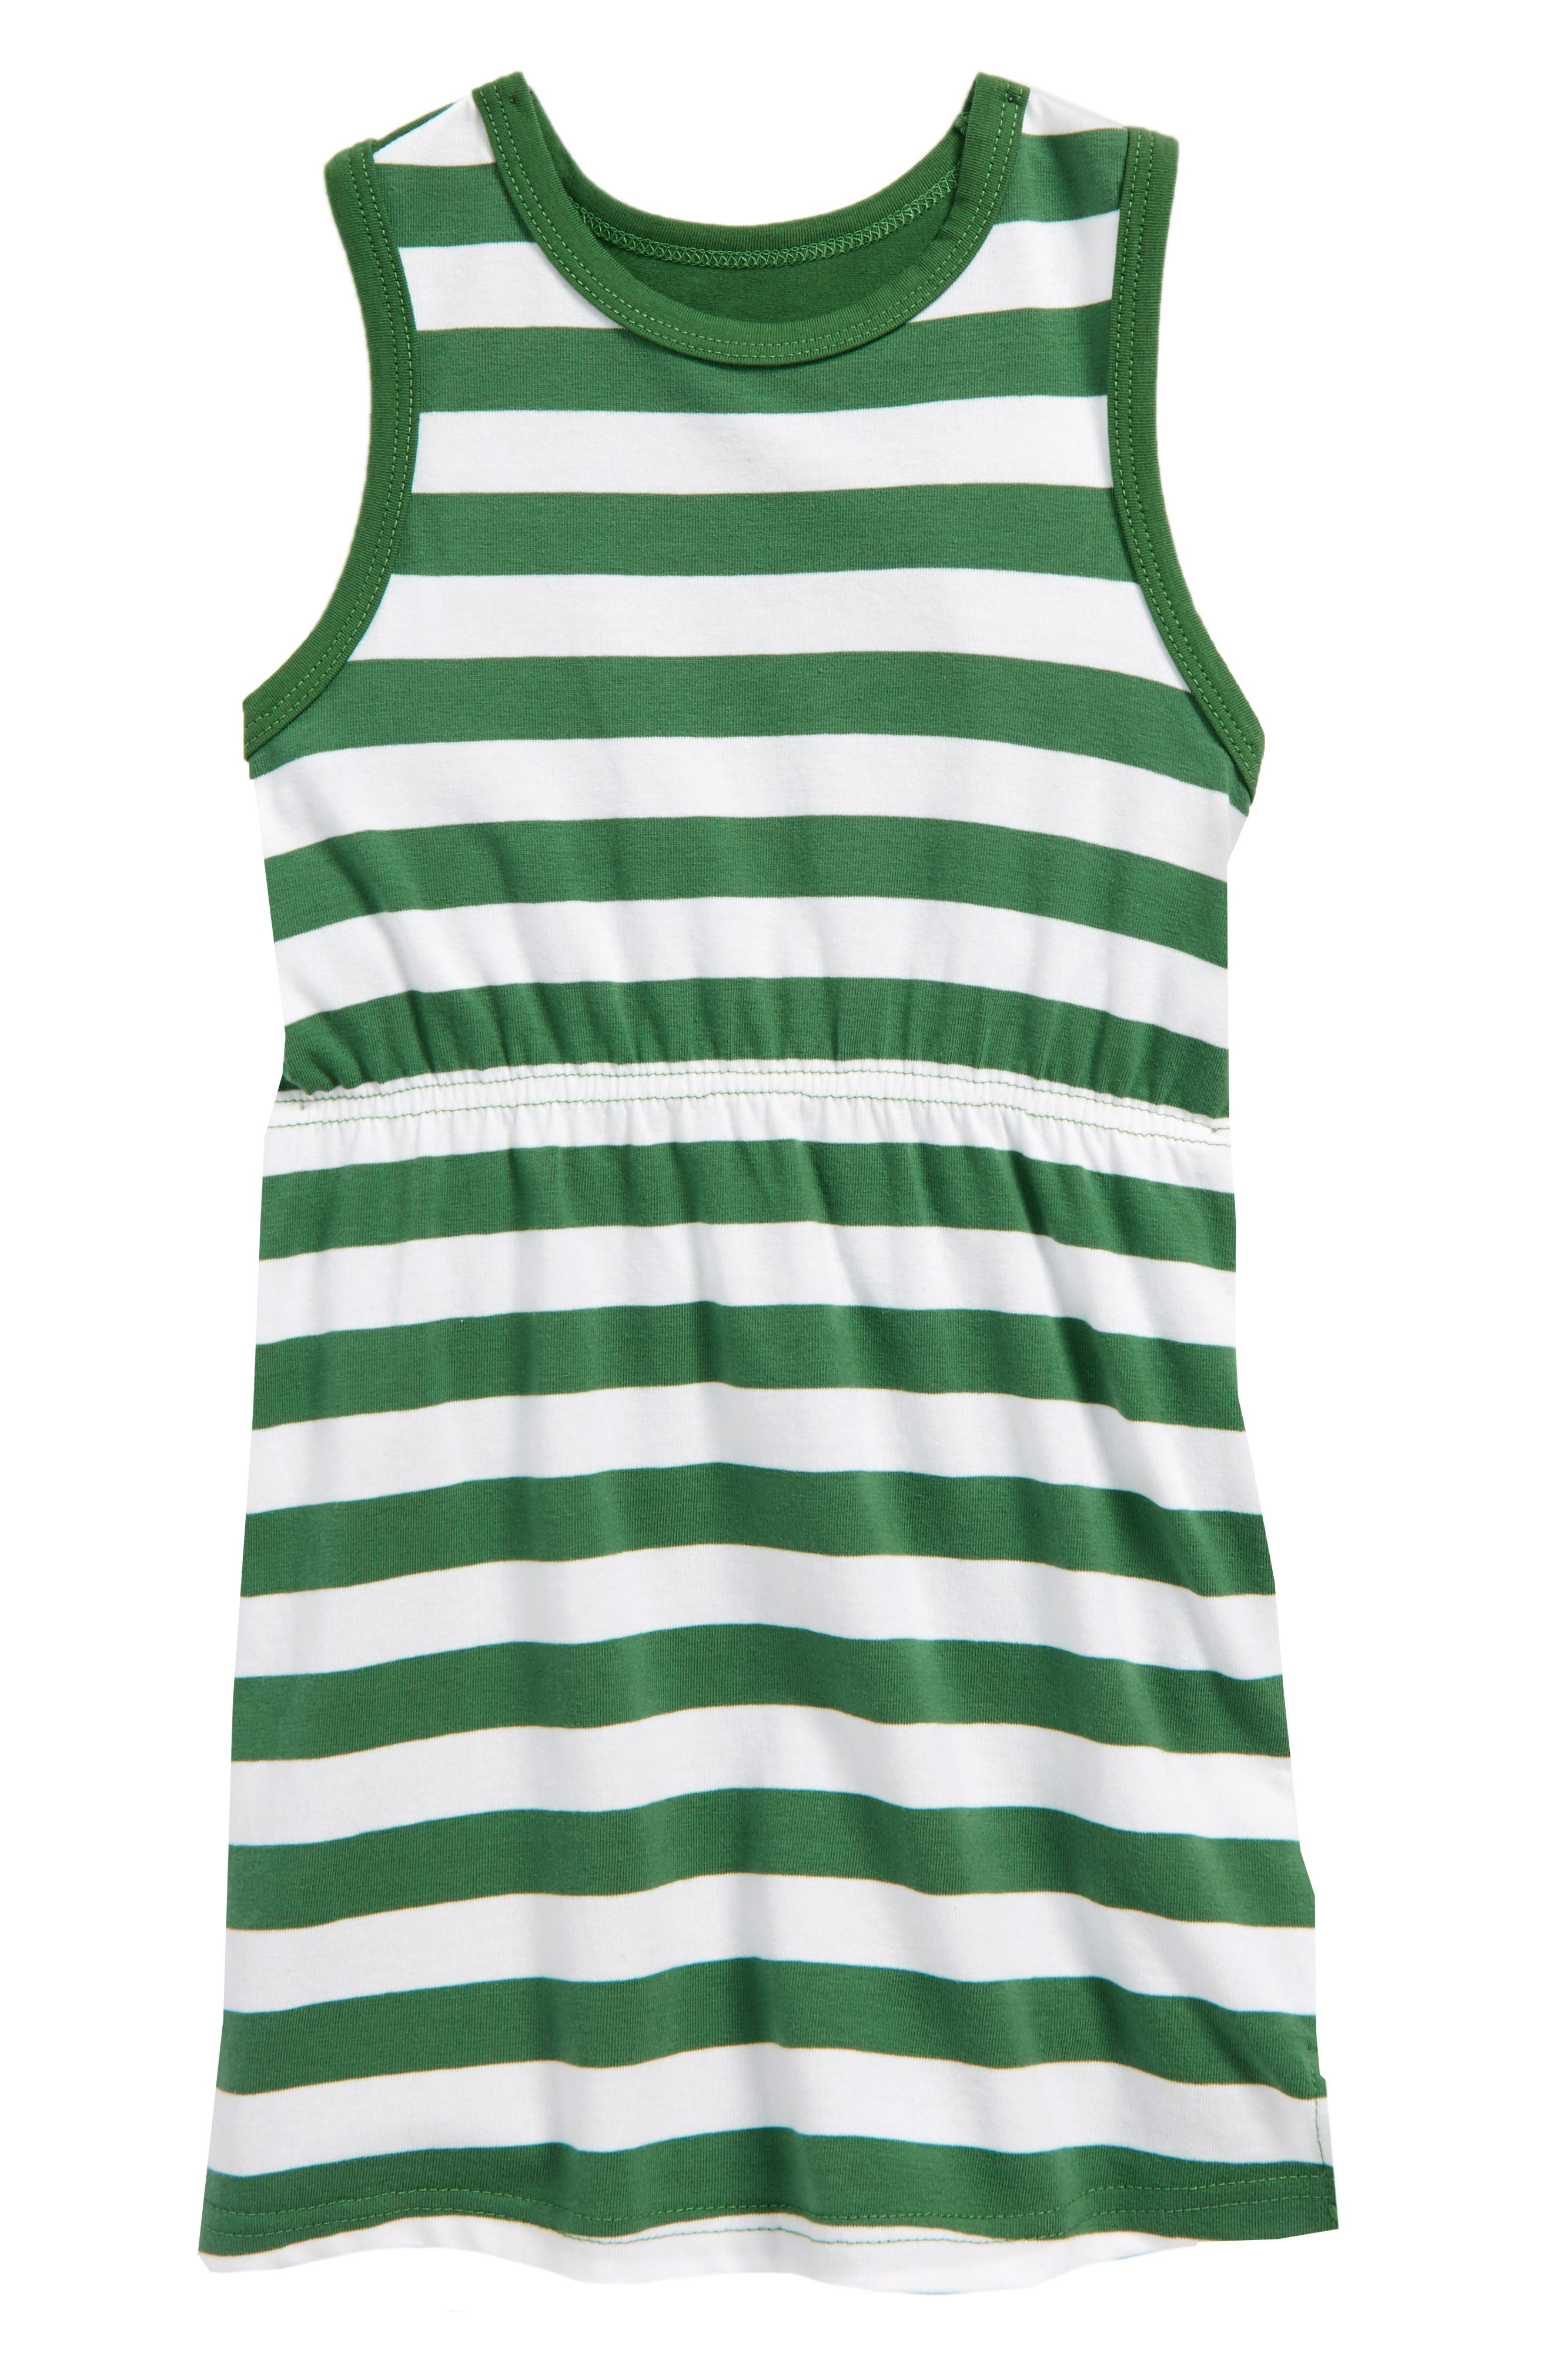 Main Image - Tiny Tribe Check You Later Racerback Dress (Toddler Girls & Little Girls)